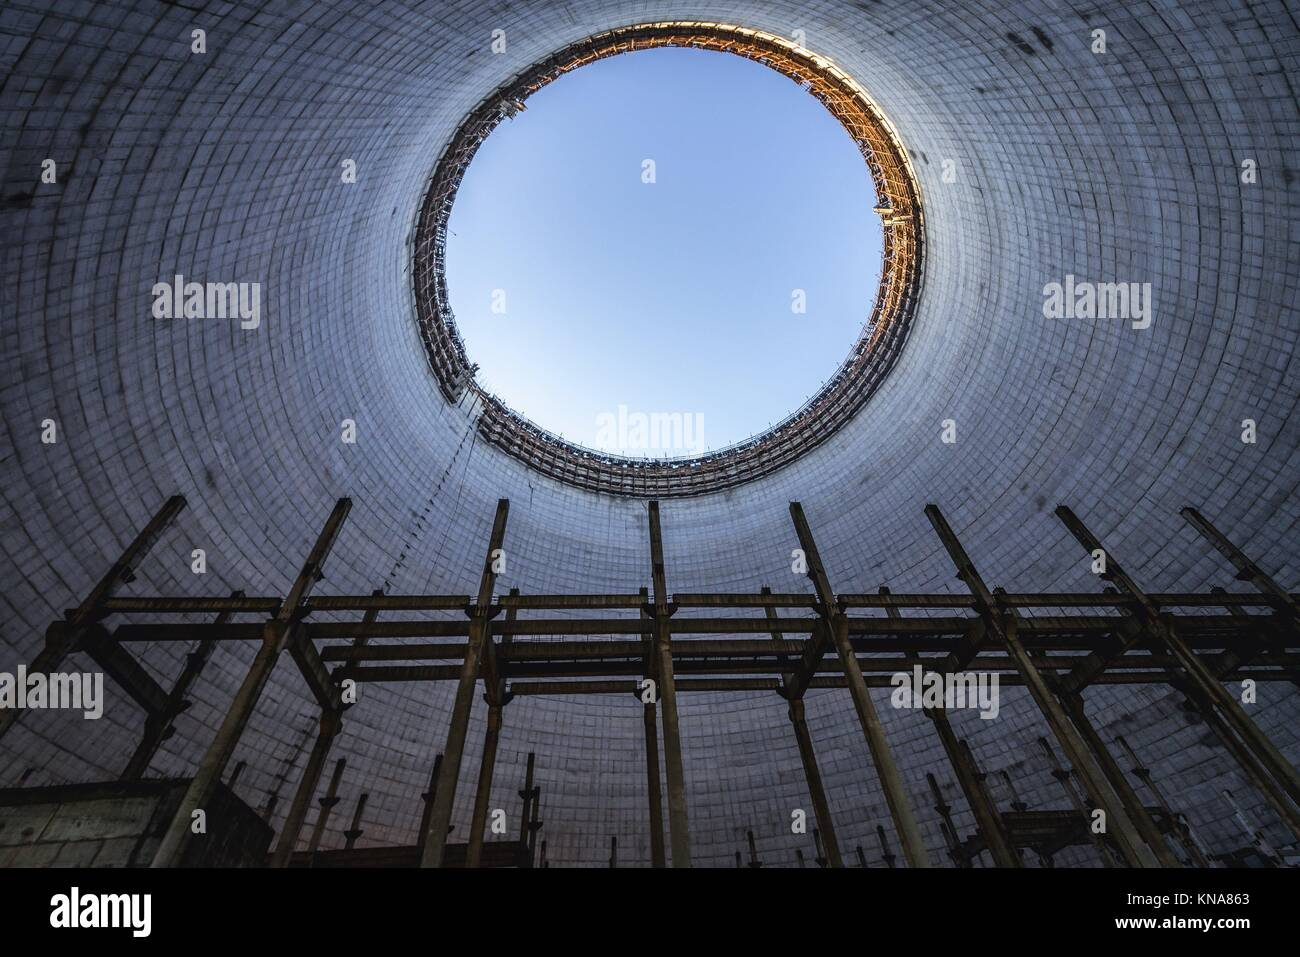 Inside the cooling tower of Chernobyl Nuclear Power Plant in Zone of Alienation around the nuclear reactor disaster - Stock Image